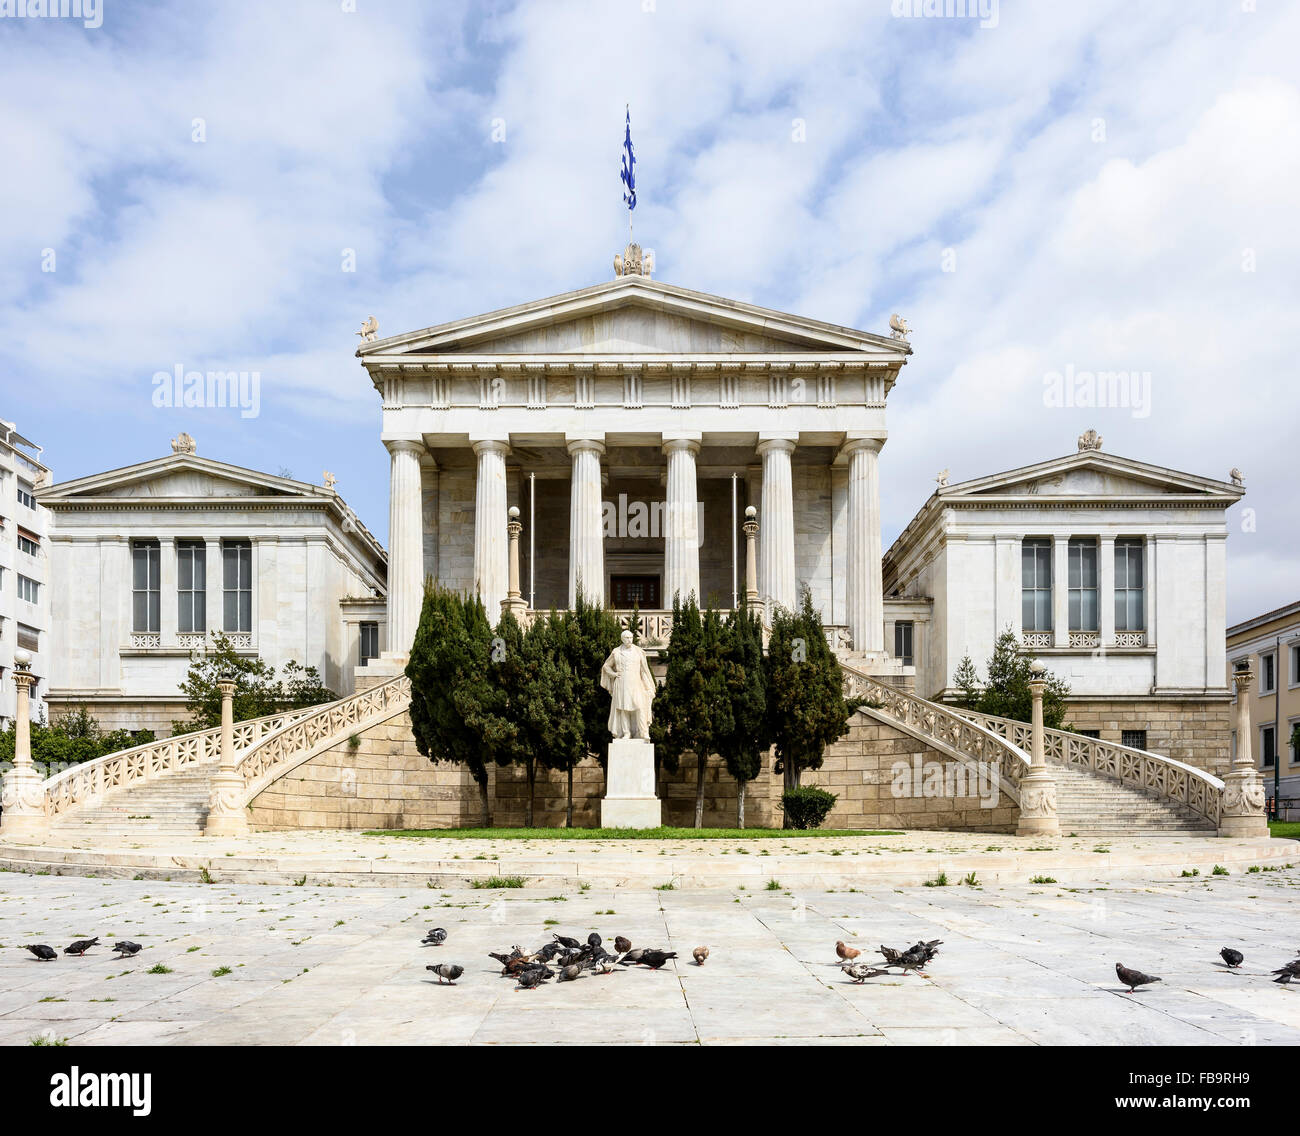 The National Library of Greece. Institutions of Athens, Athens, Greece. Architect: N/A, 2015. Stock Photo